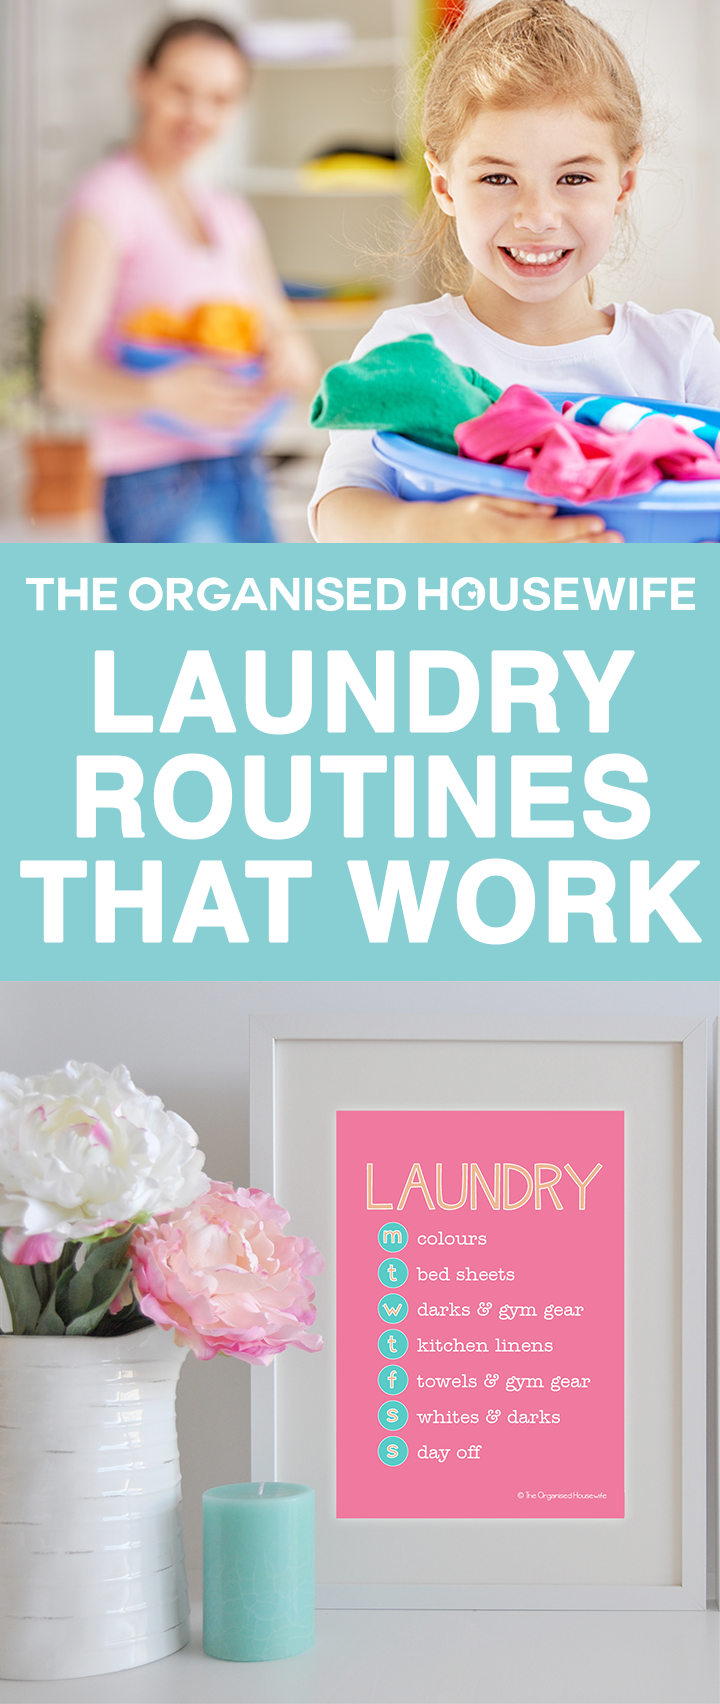 The laundry can easily get out of control, with piles of dirty clothes piling up for the moment you have time to spend on washing. I can think of better things to do than a day of washing clothes! Creating a system for your laundry can help this tedious task become more manageable.